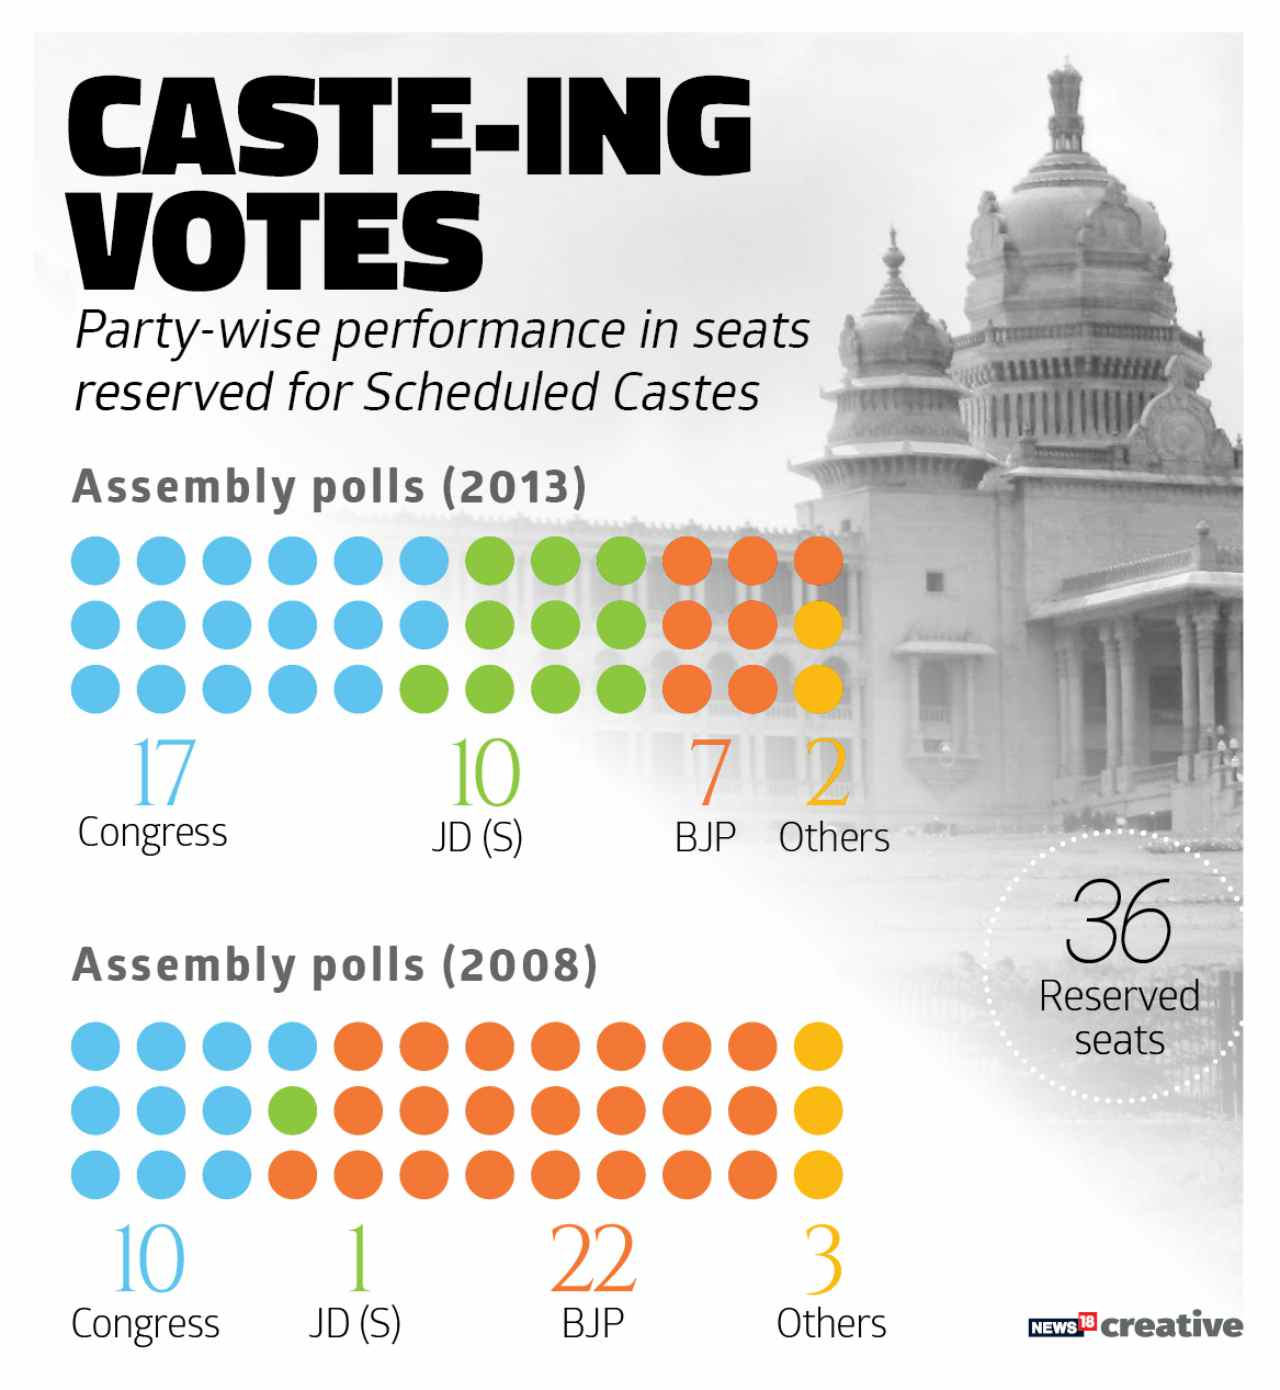 Road to Power | Interestingly, the party which dominates the reserved seats gets to form the government at Bengaluru. In 2008, BJP won 22 of the 36 Scheduled Caste seats and formed the government. In 2013, Congress bagged 17 of the 36 seats to grab the power.